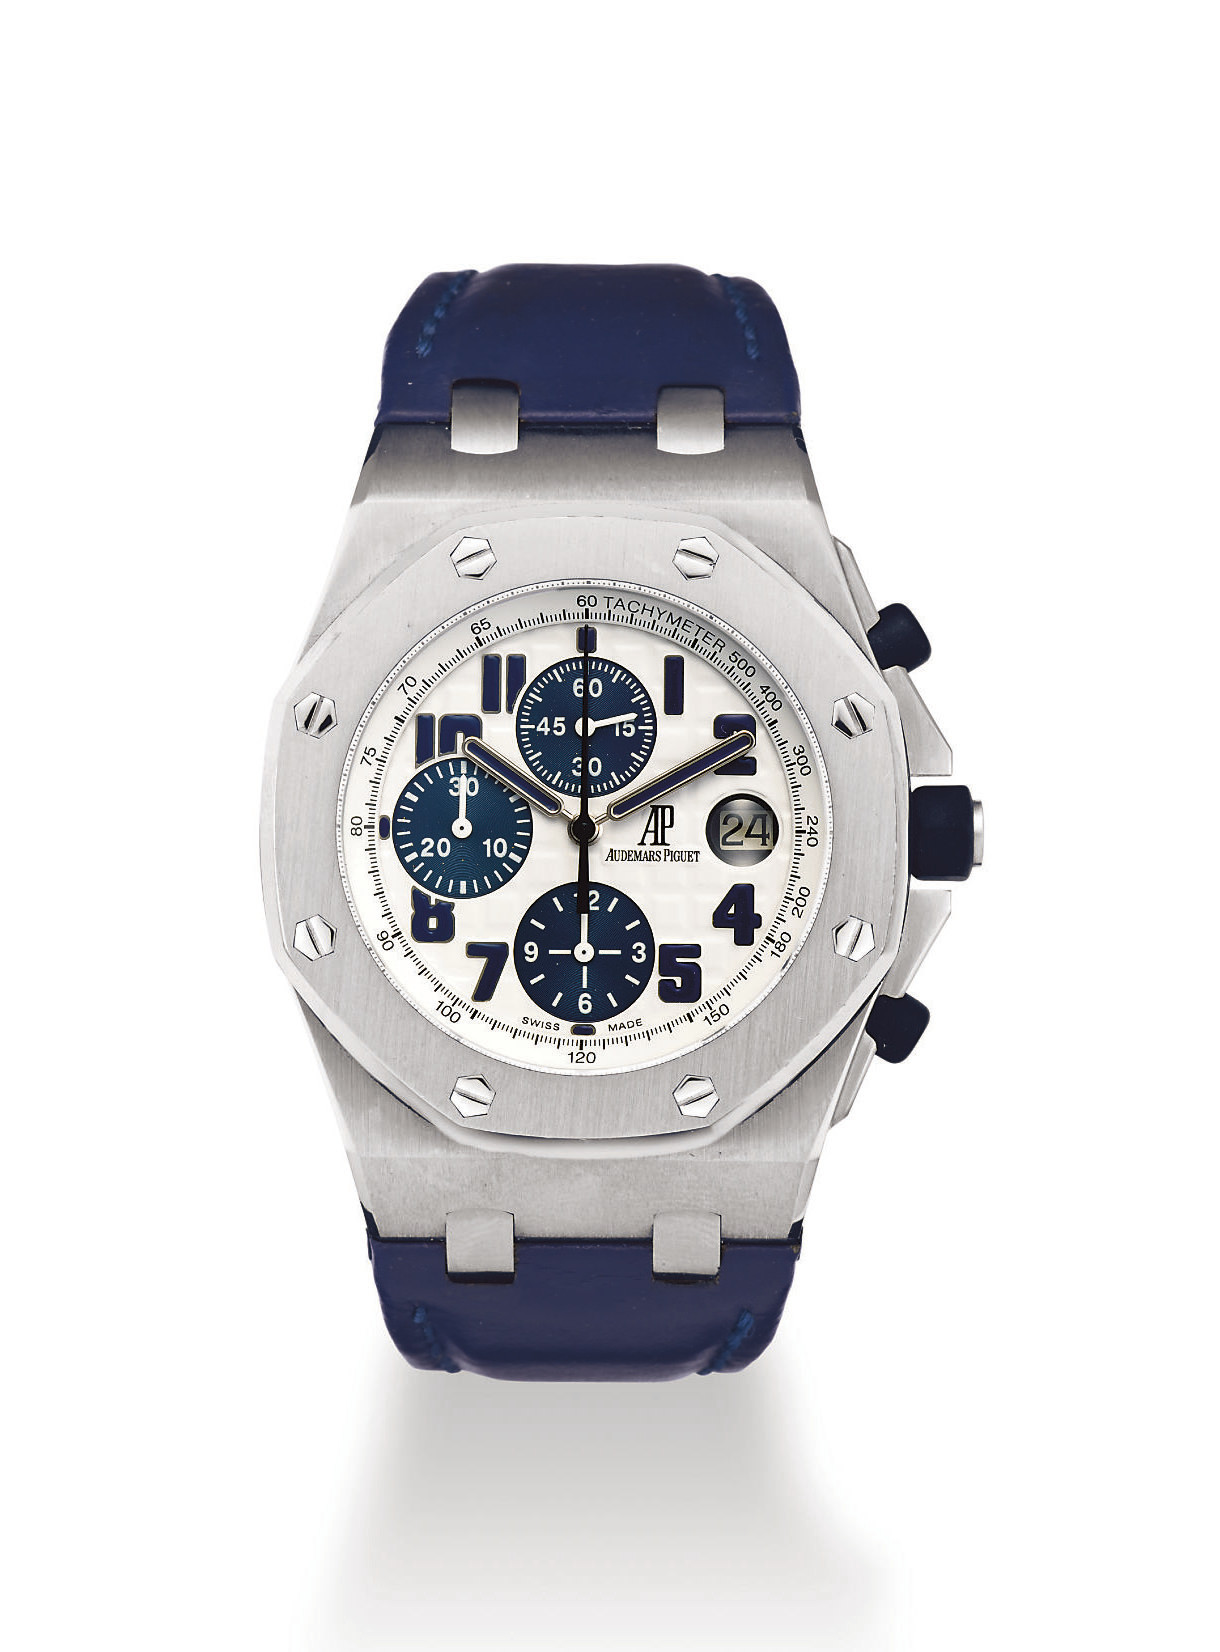 Audemars piguet royal oak offshore chronograph navy stainless steel automatic antimagnetic for Royal oak offshore navy